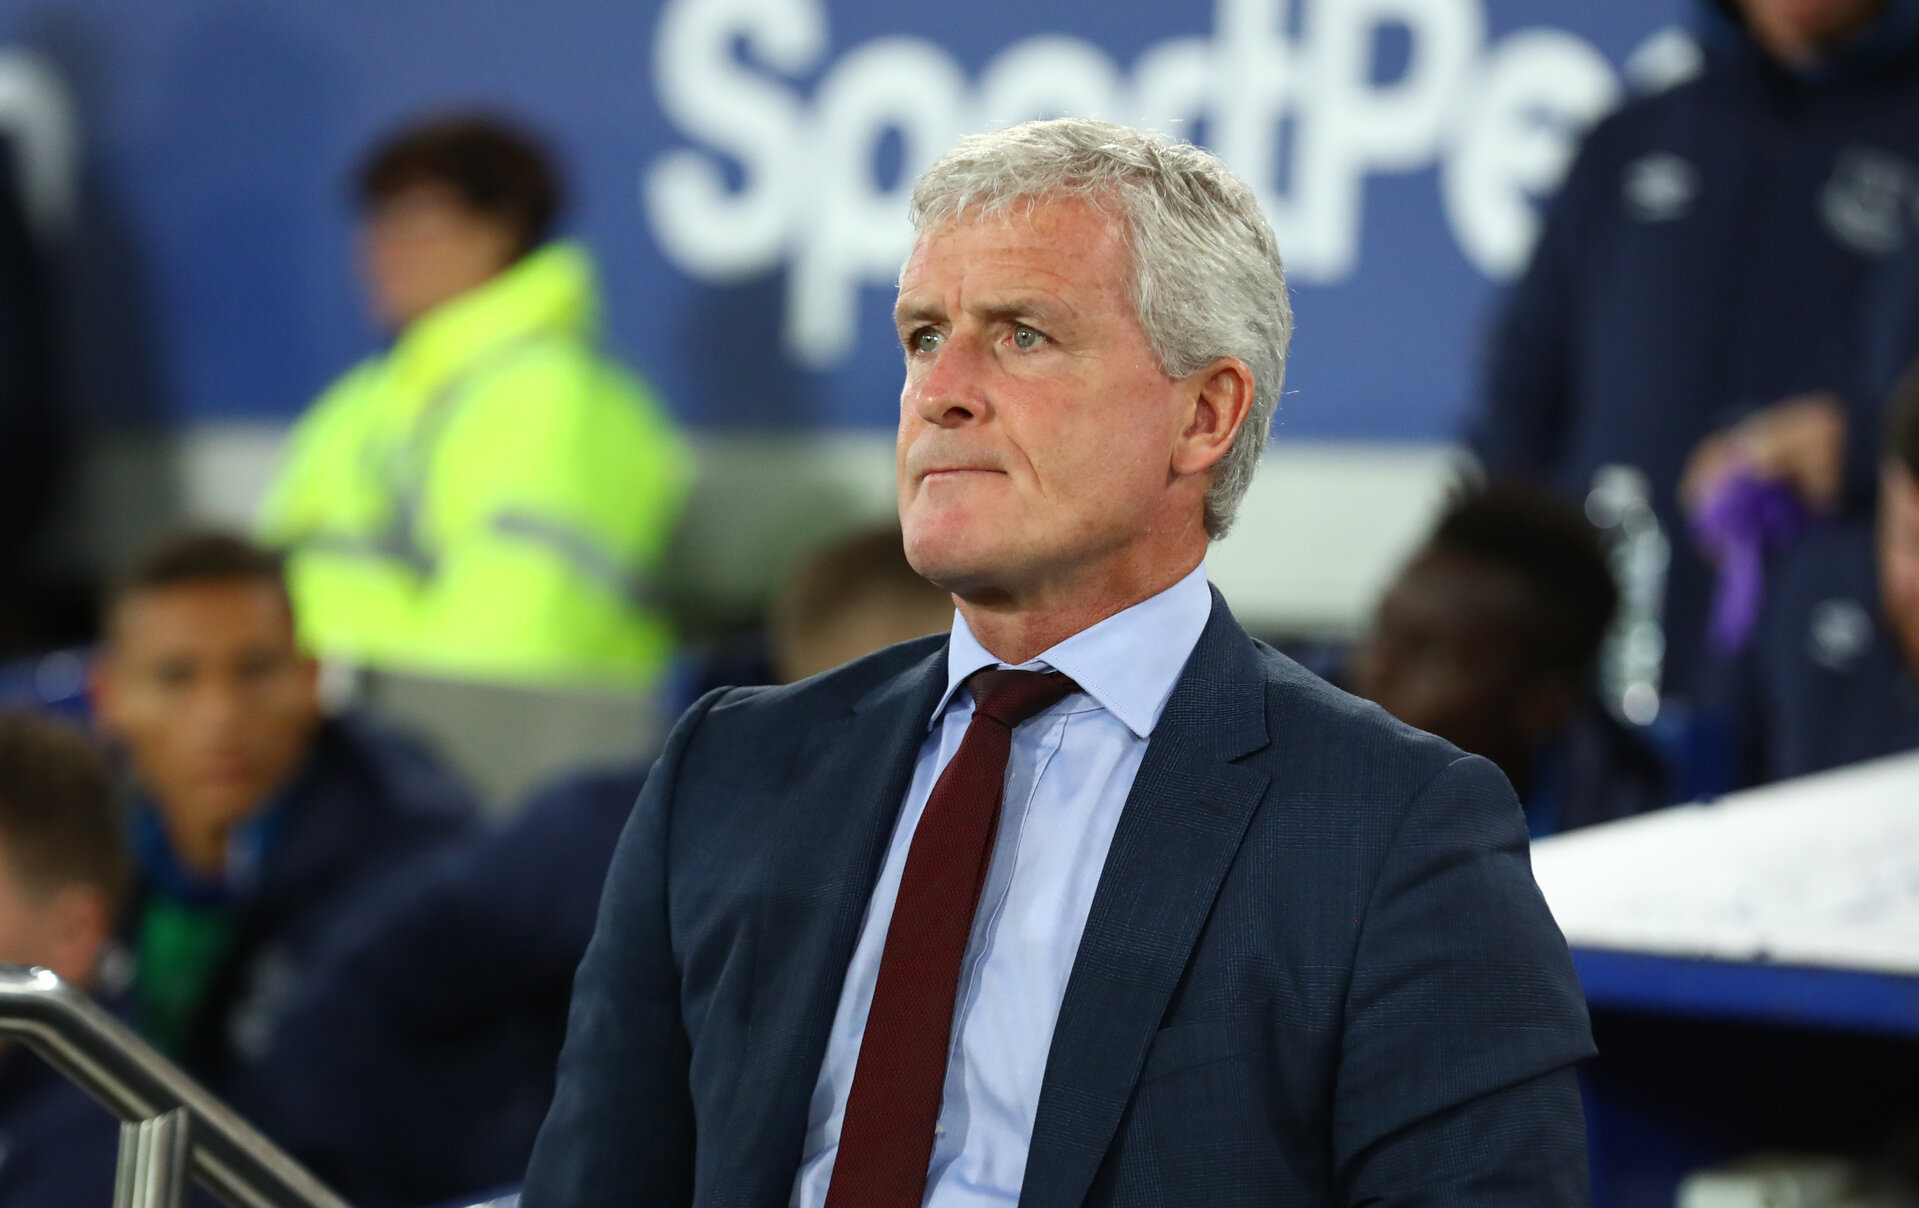 LIVERPOOL, ENGLAND - OCTOBER 02: Mark Hughes of Southampton during the Carabao Cup Third Round match between Everton and Southampton at Goodison Park on October 2nd, 2018 in Liverpool, England. (Photo by Matt Watson/Southampton FC via Getty Images)